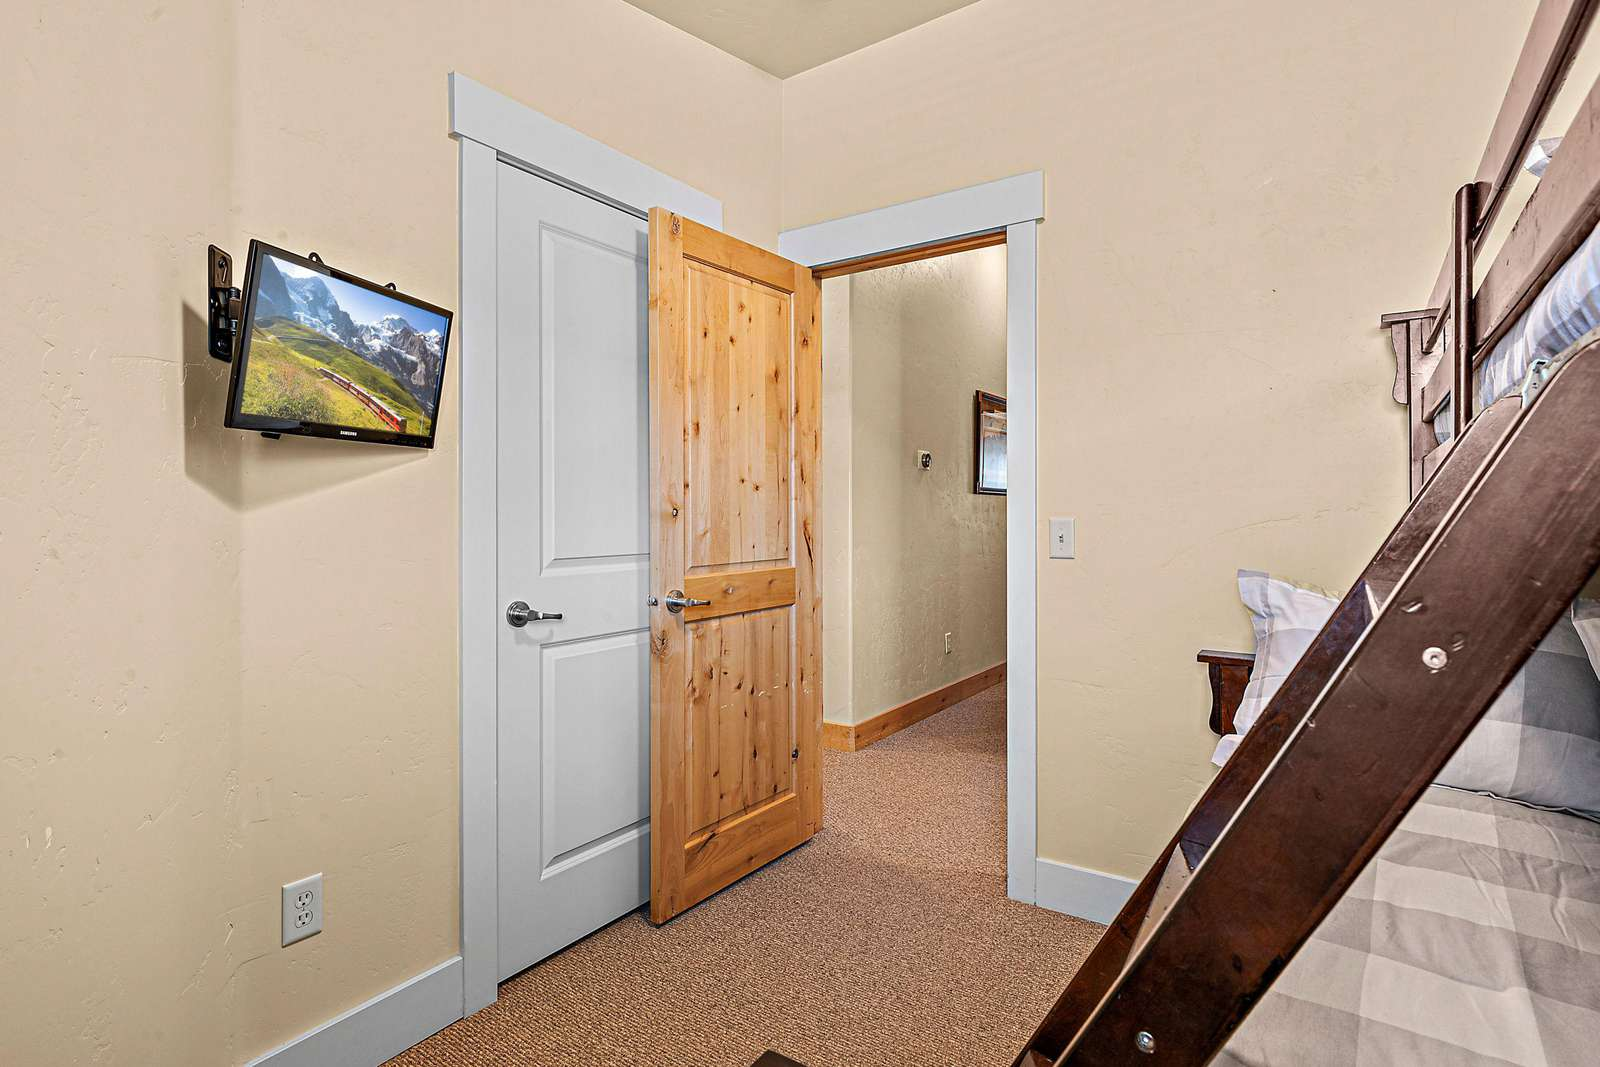 Bunk room with TV and closet space available